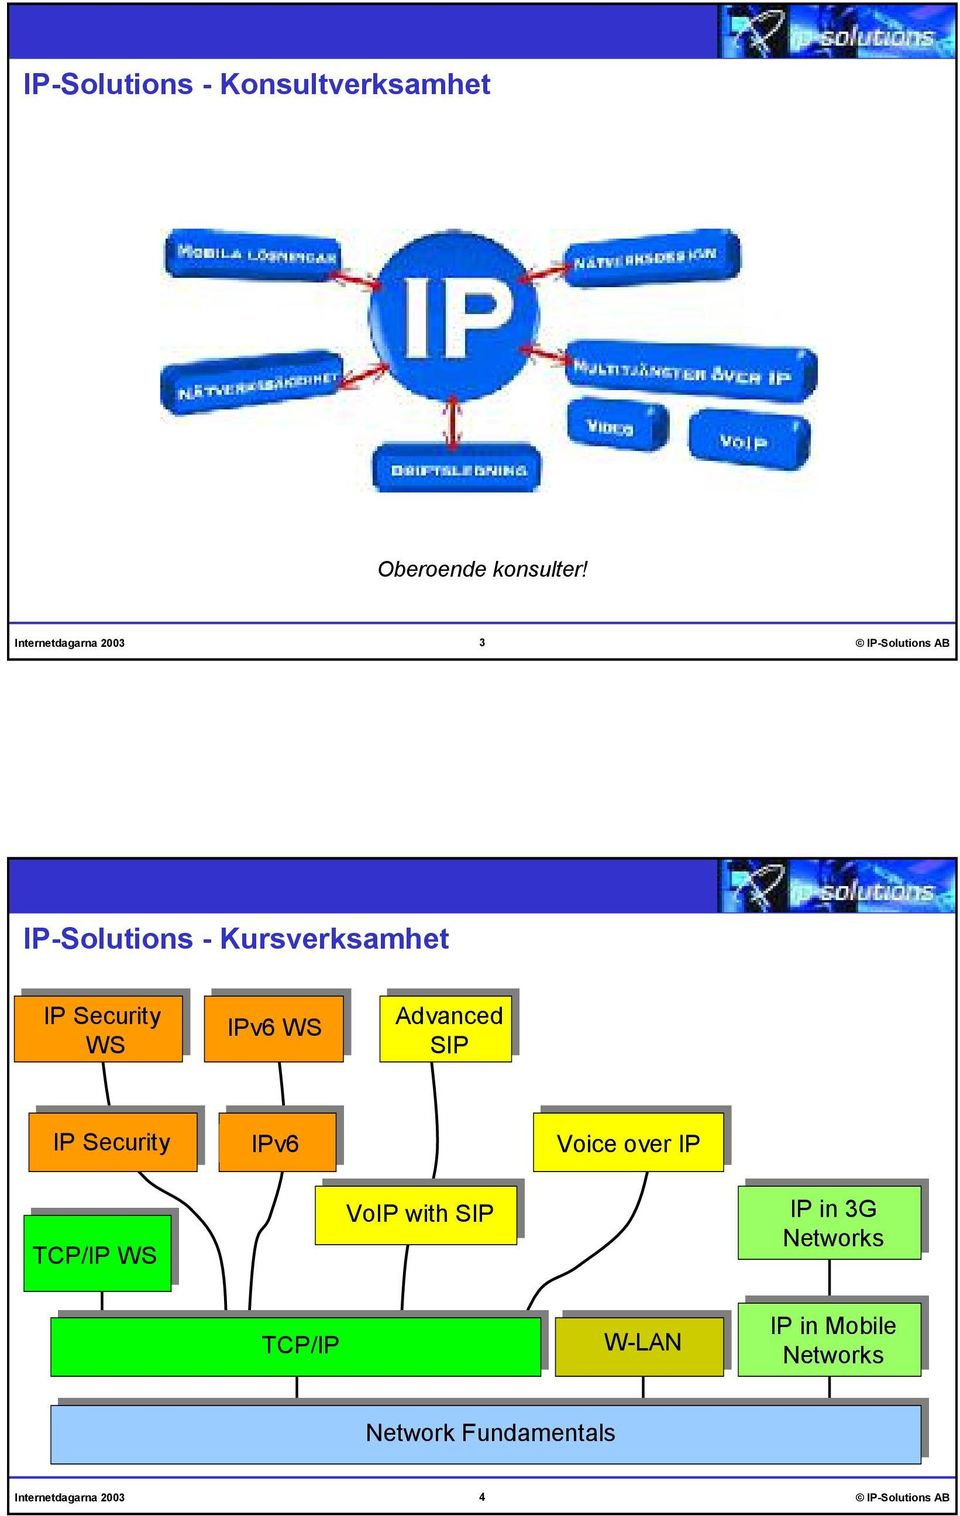 Advanced SIP IP Security IPv6 Voice over IP TCP/IP WS VoIP with SIP IP